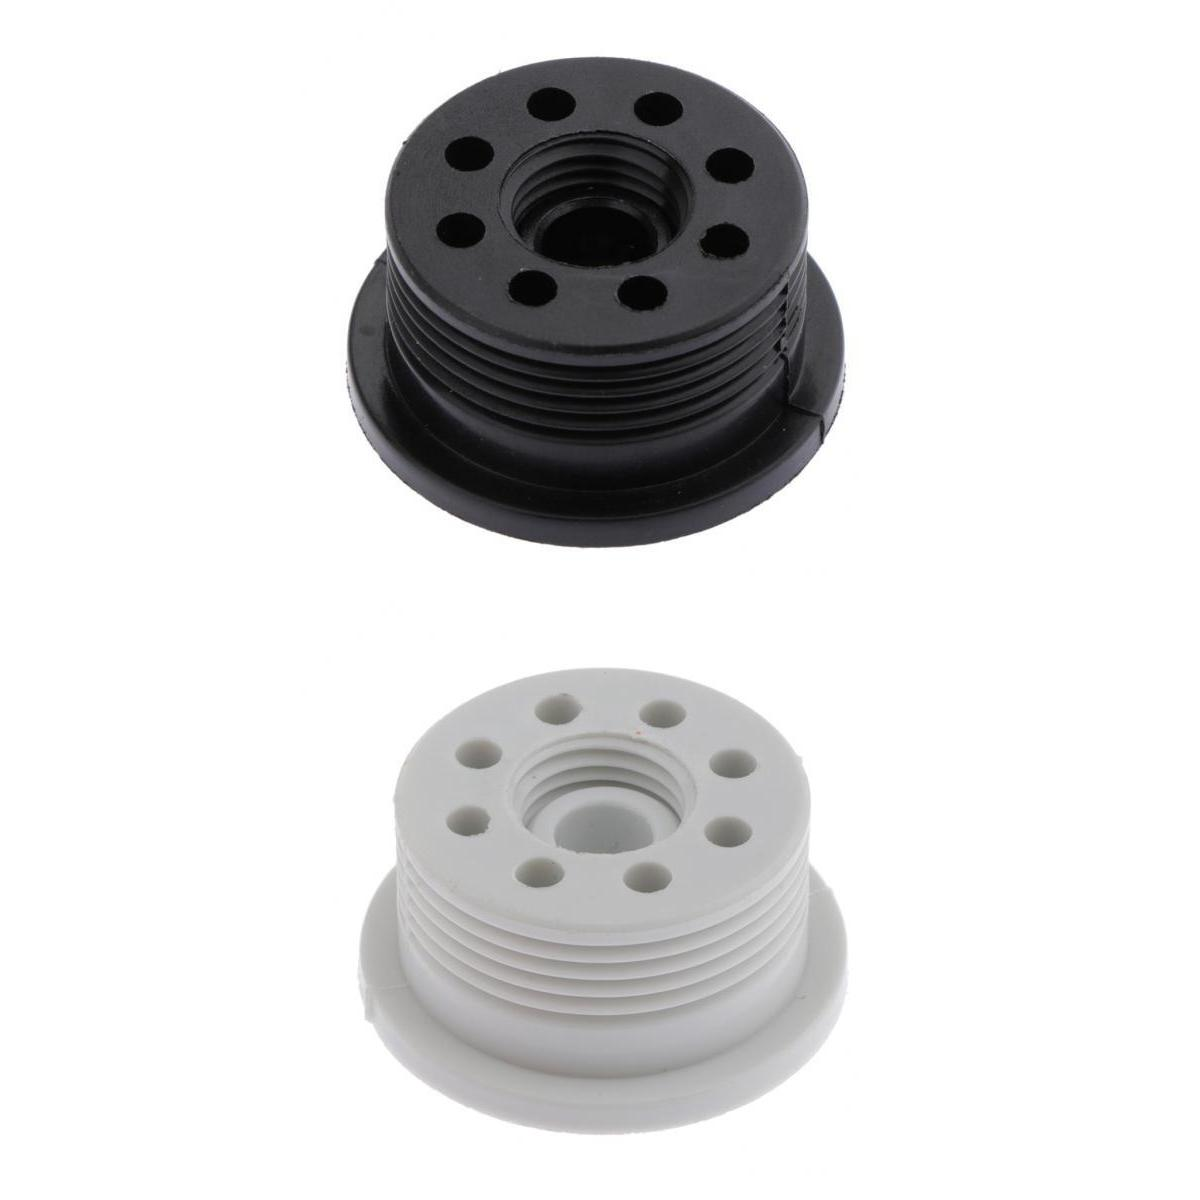 2x Leakproof Surfing Vent Plug SUP Surfboard Screw In Auto Vent Plug Stooper